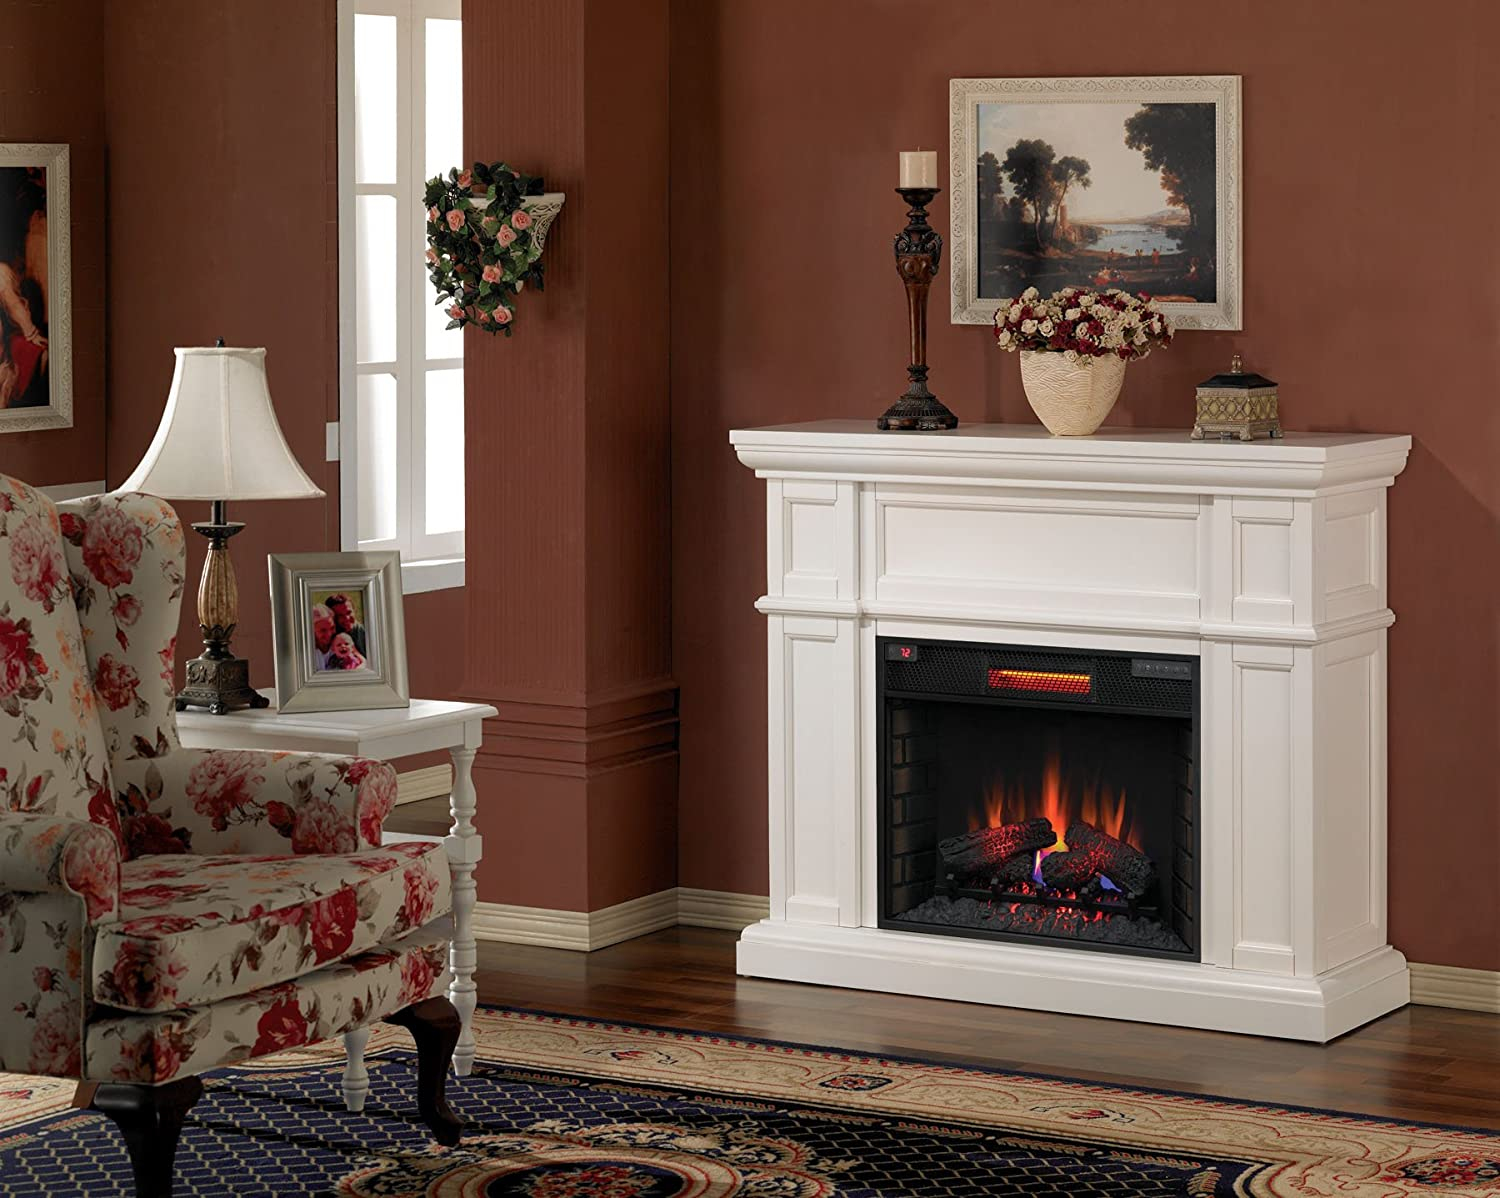 Artesian White Electric Fireplace 23WM426WHT 0401 Amazonca Home Kitchen